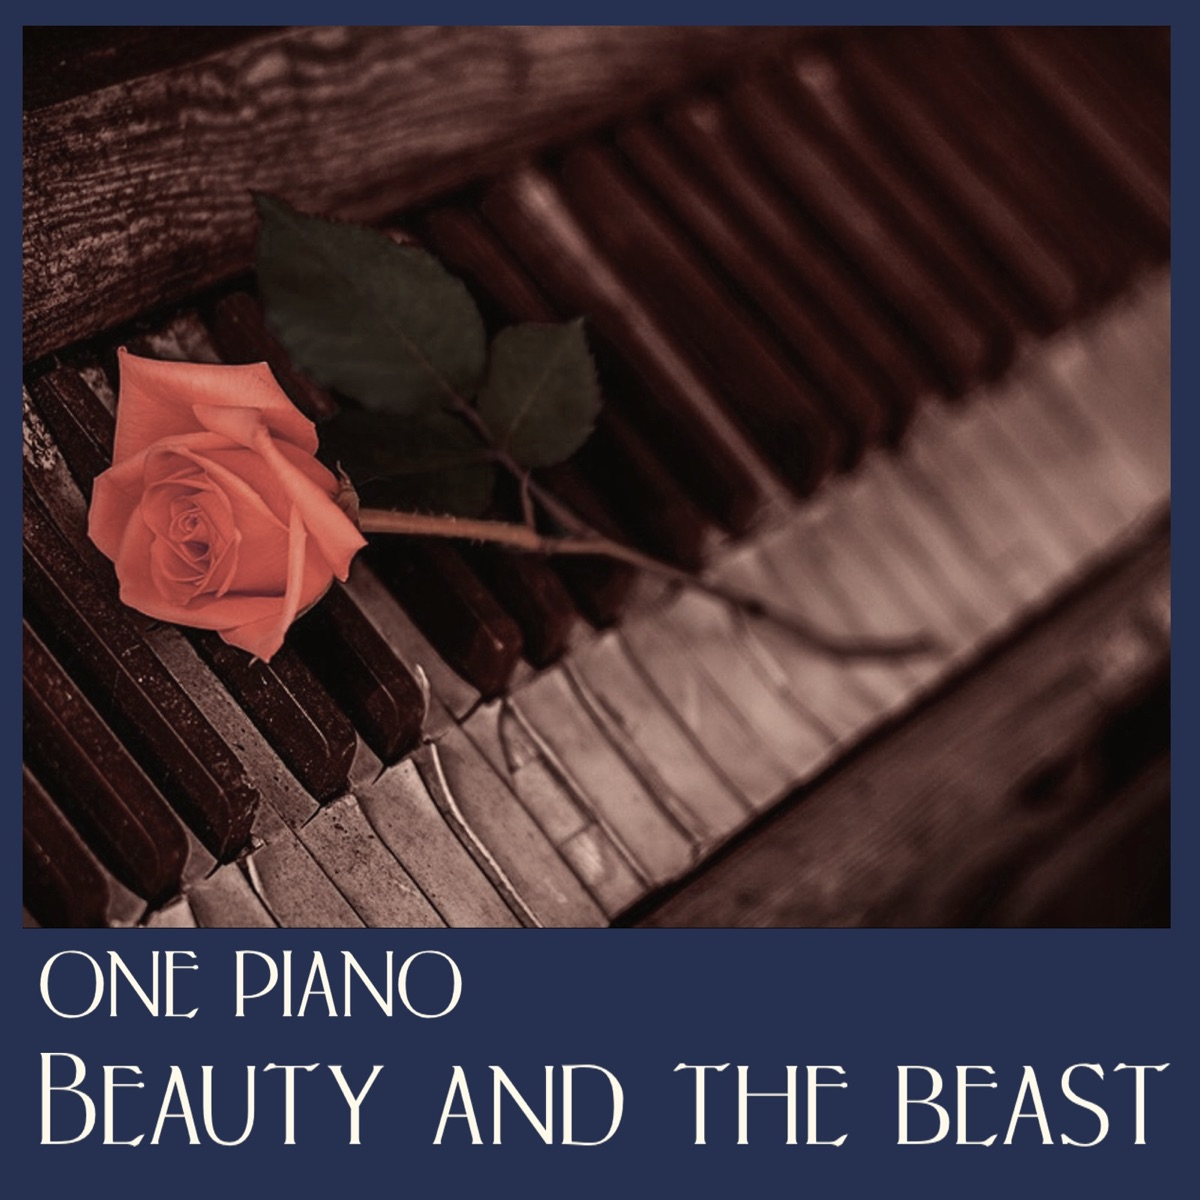 Beauty and the Beast One Piano CD cover